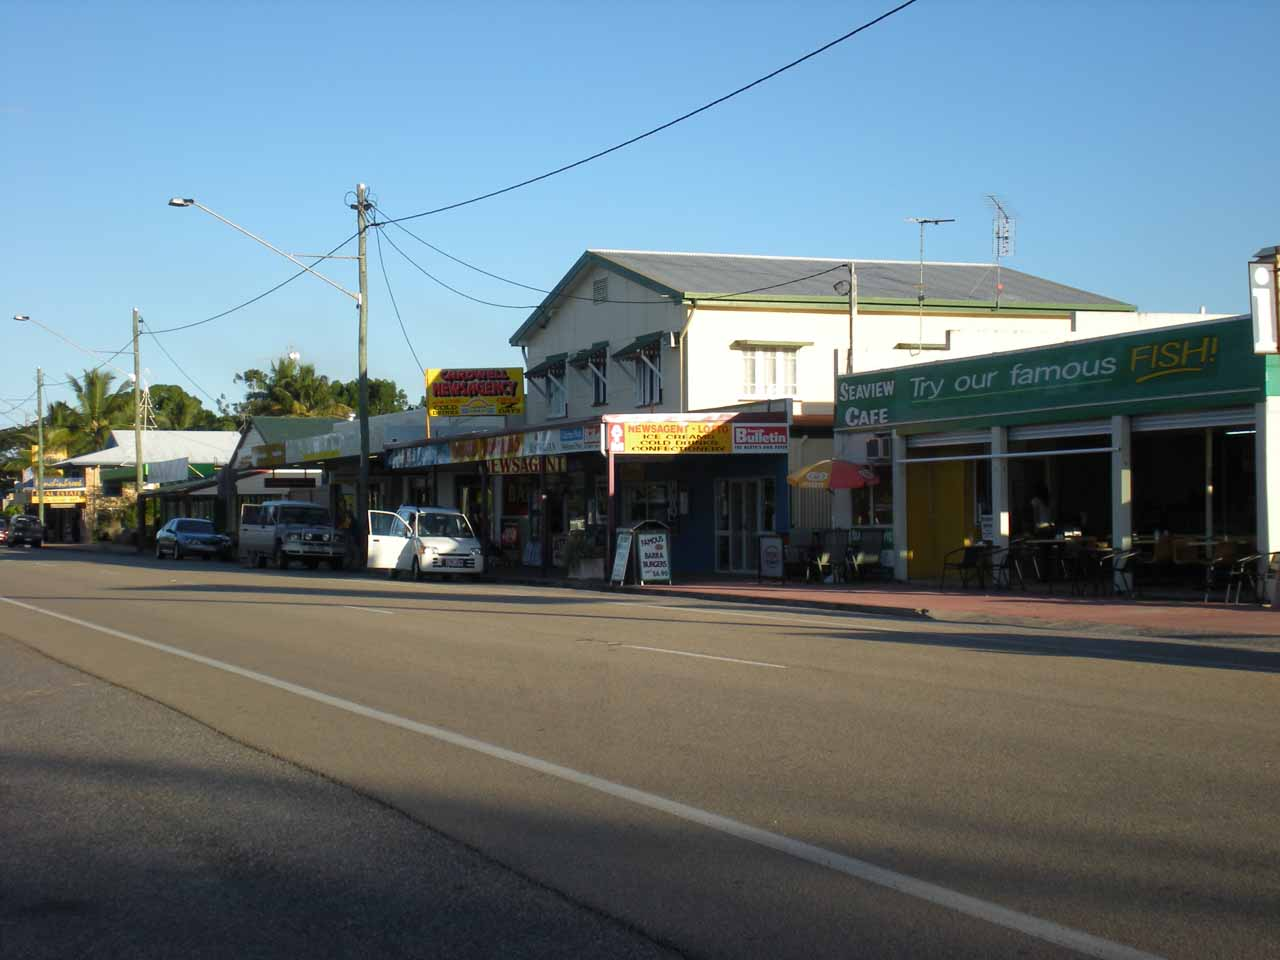 The town of Cardwell